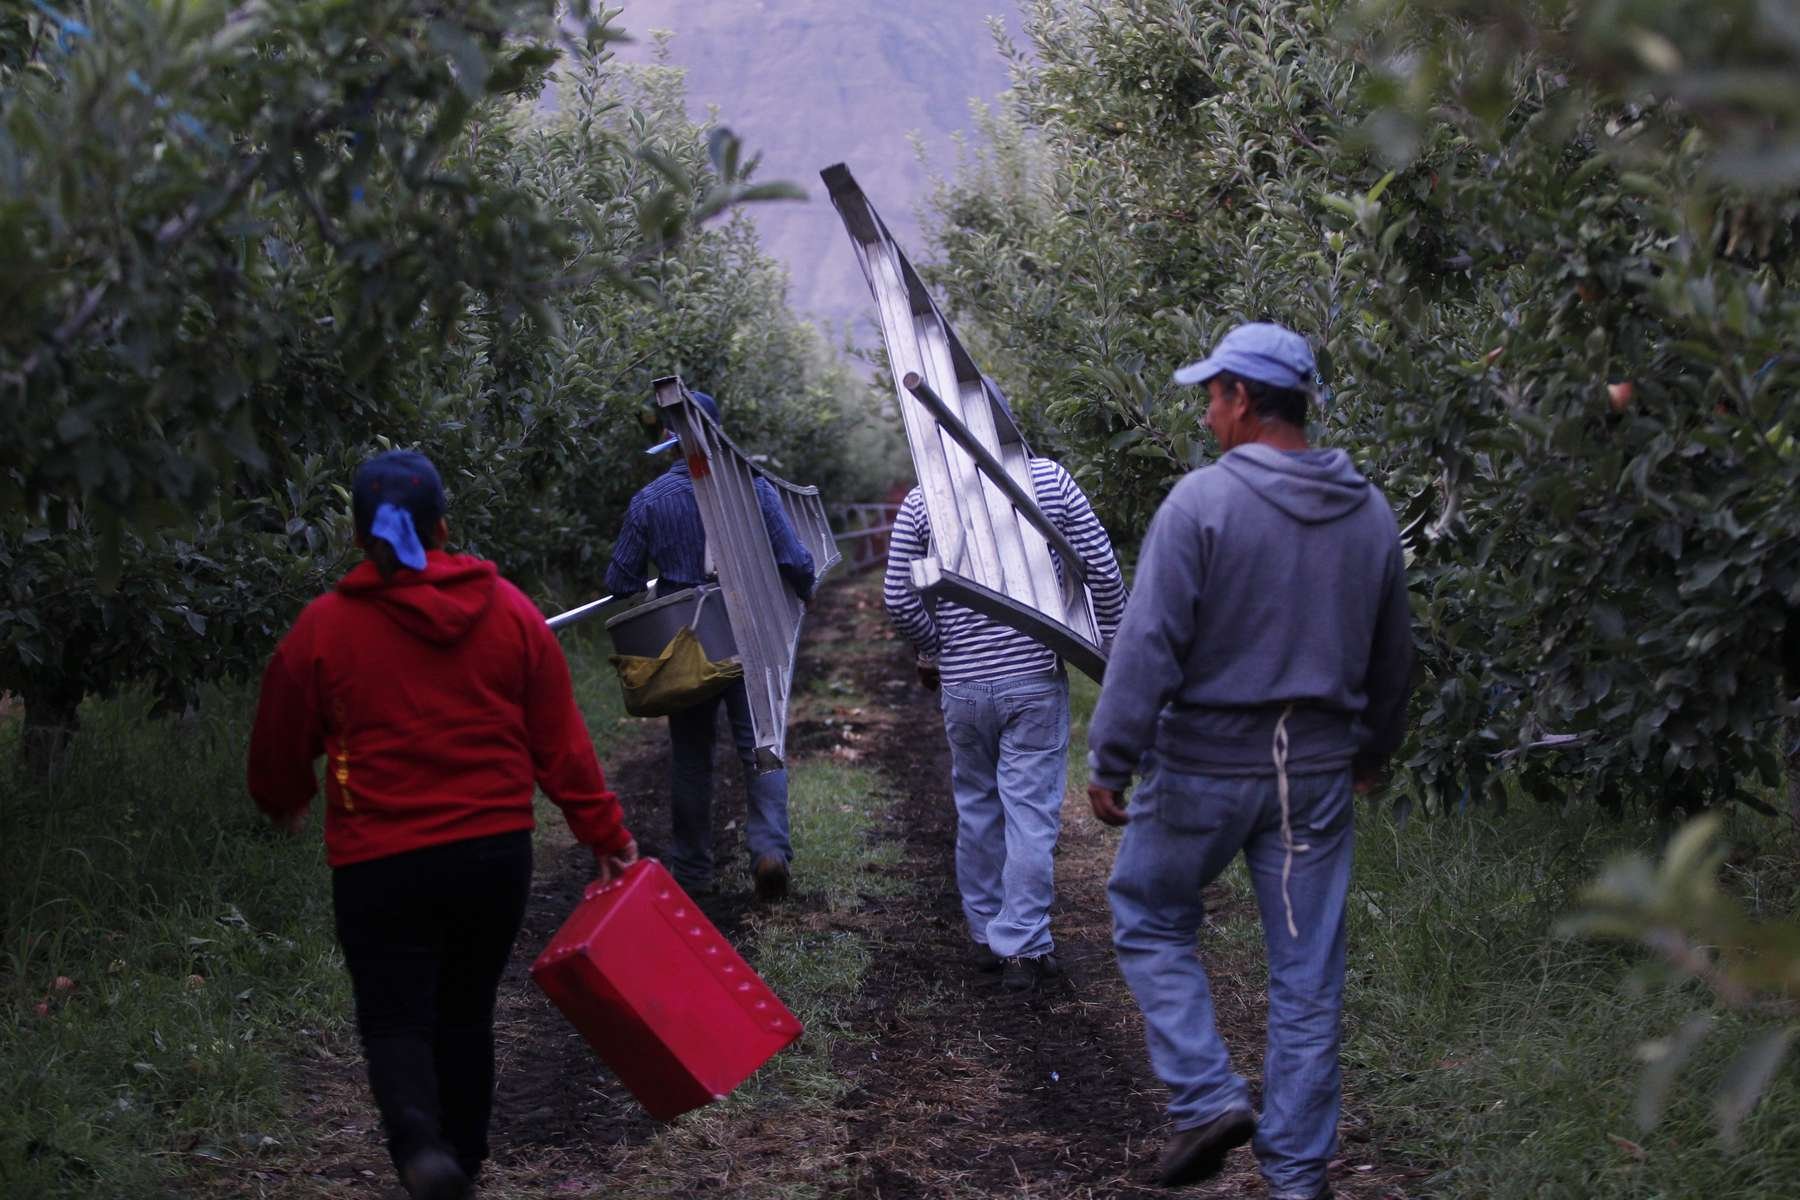 Workers take to the fields at Stemilt Orchards in Mattawa, Washington August 22, 2013 where they earn less than a dollar a bucket for the apples that they pick. Almost everyone says they are here illegally from Mexico, putting them at the center of the coming debate over citizenship. Washington is the nation's leading apple producer, and none of the farmers in the Mattawa area was, as of last year, registered with E-verify, a free US government service that checks workers' papers.